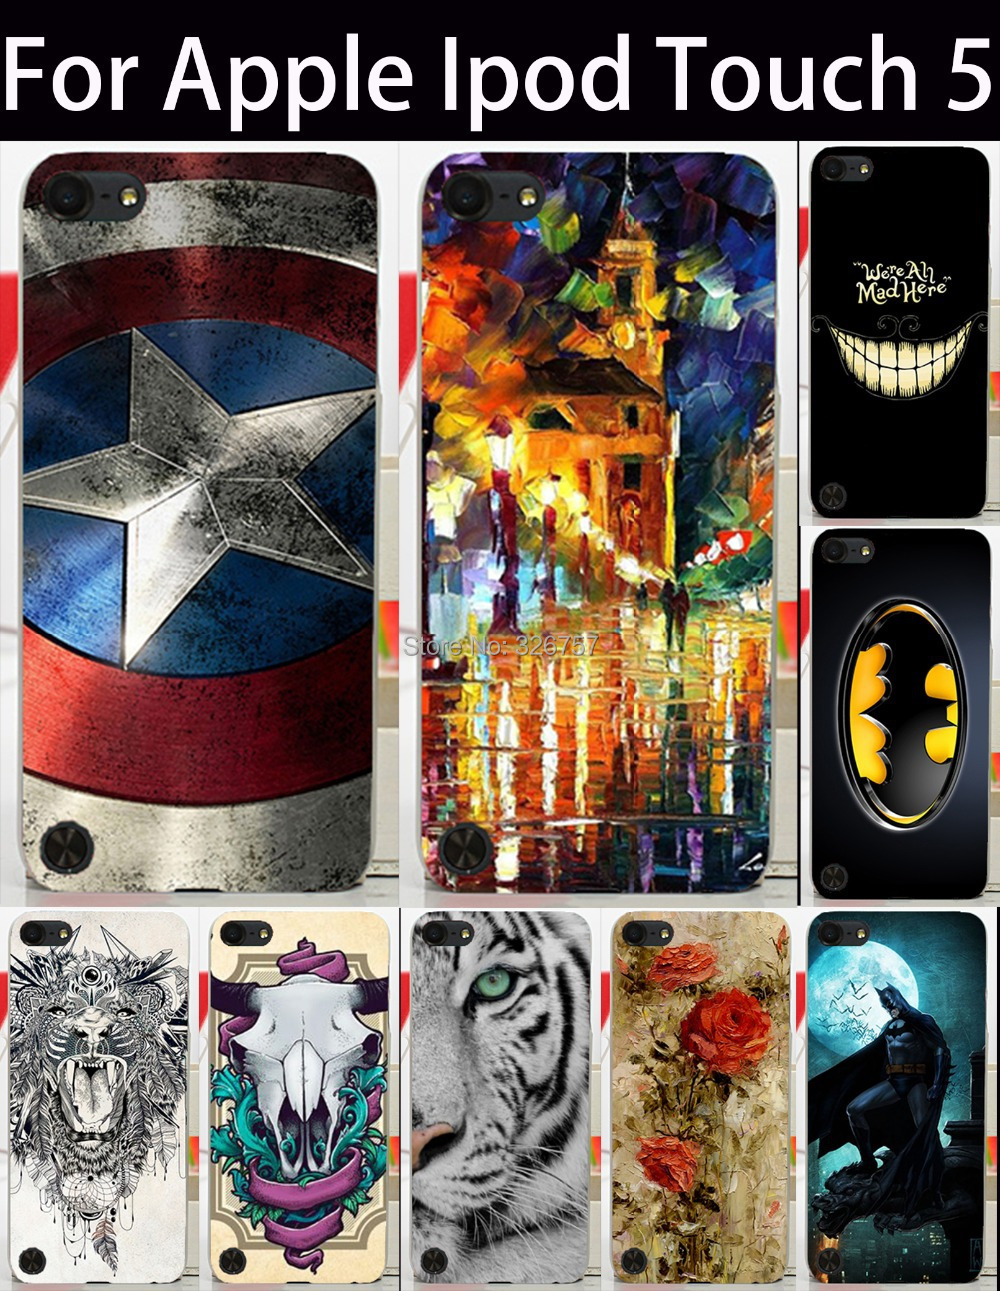 Cute mobile phone Case for Apple iPod Touch5 touch 5 Protector sheath DIY Captain America Paint BatMan Goat Durable Shield Cases(China (Mainland))